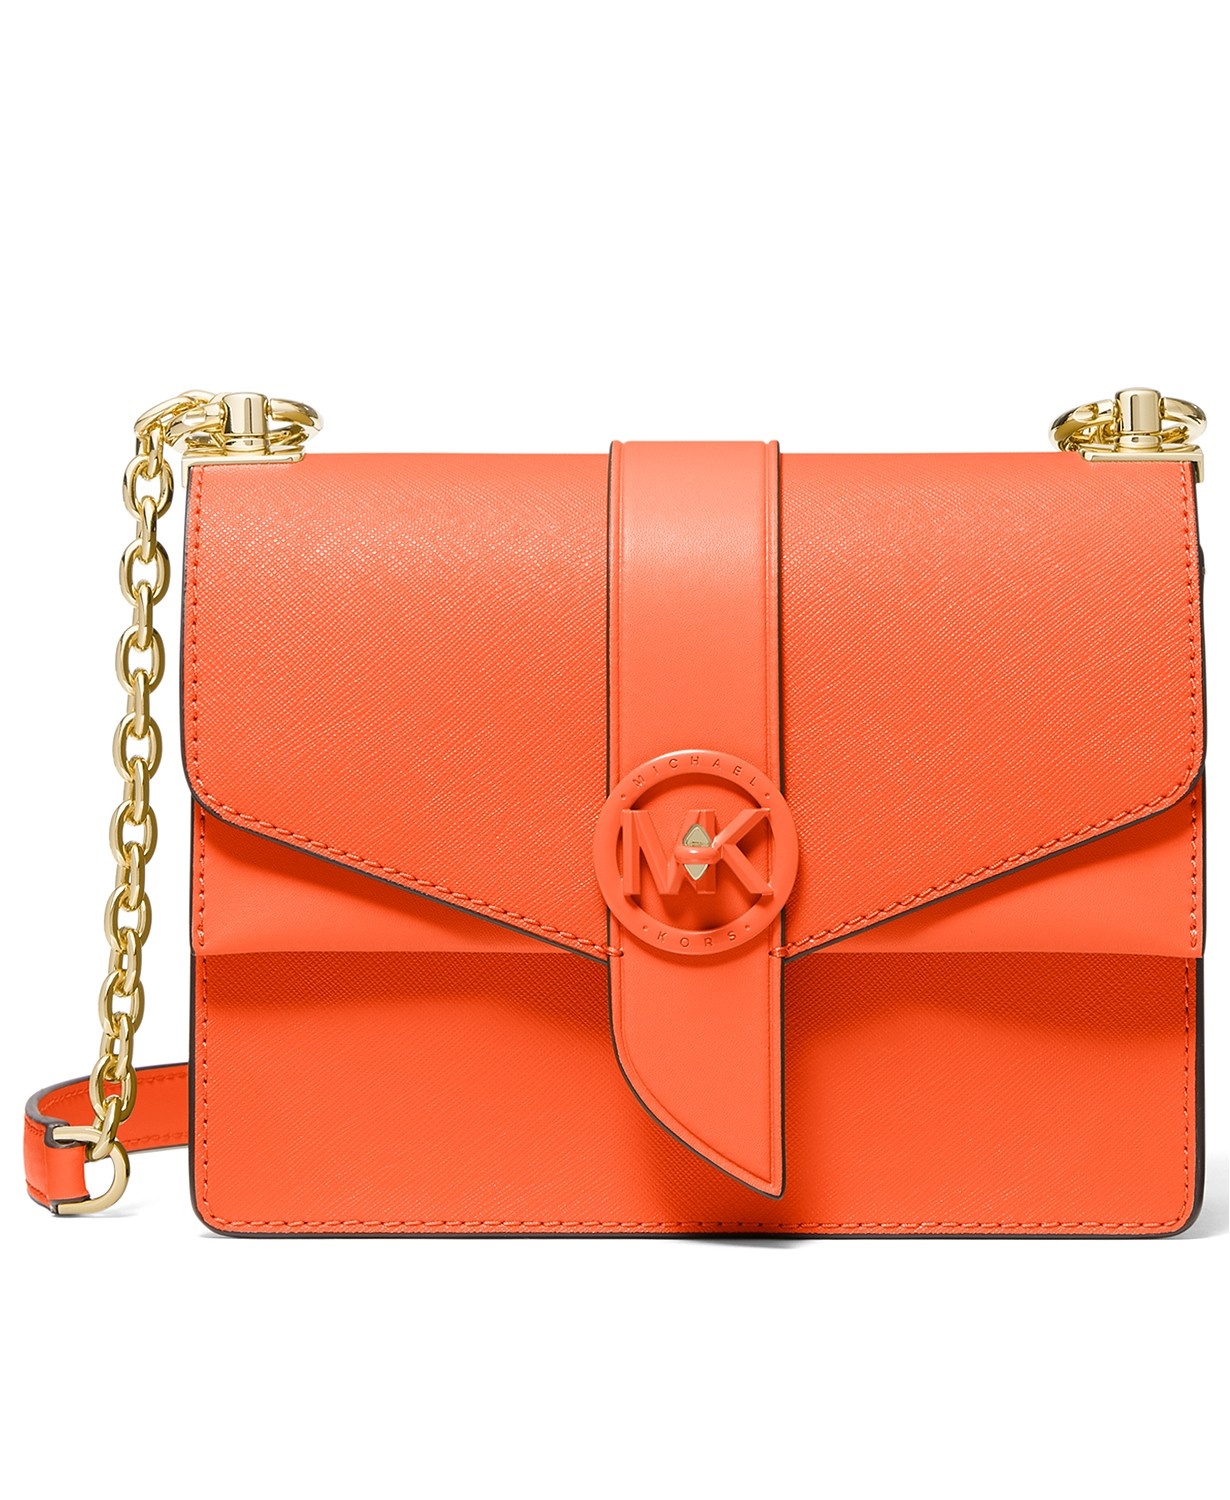 Michael Kors Greenwich Leather Convertible Crossbody $207.99